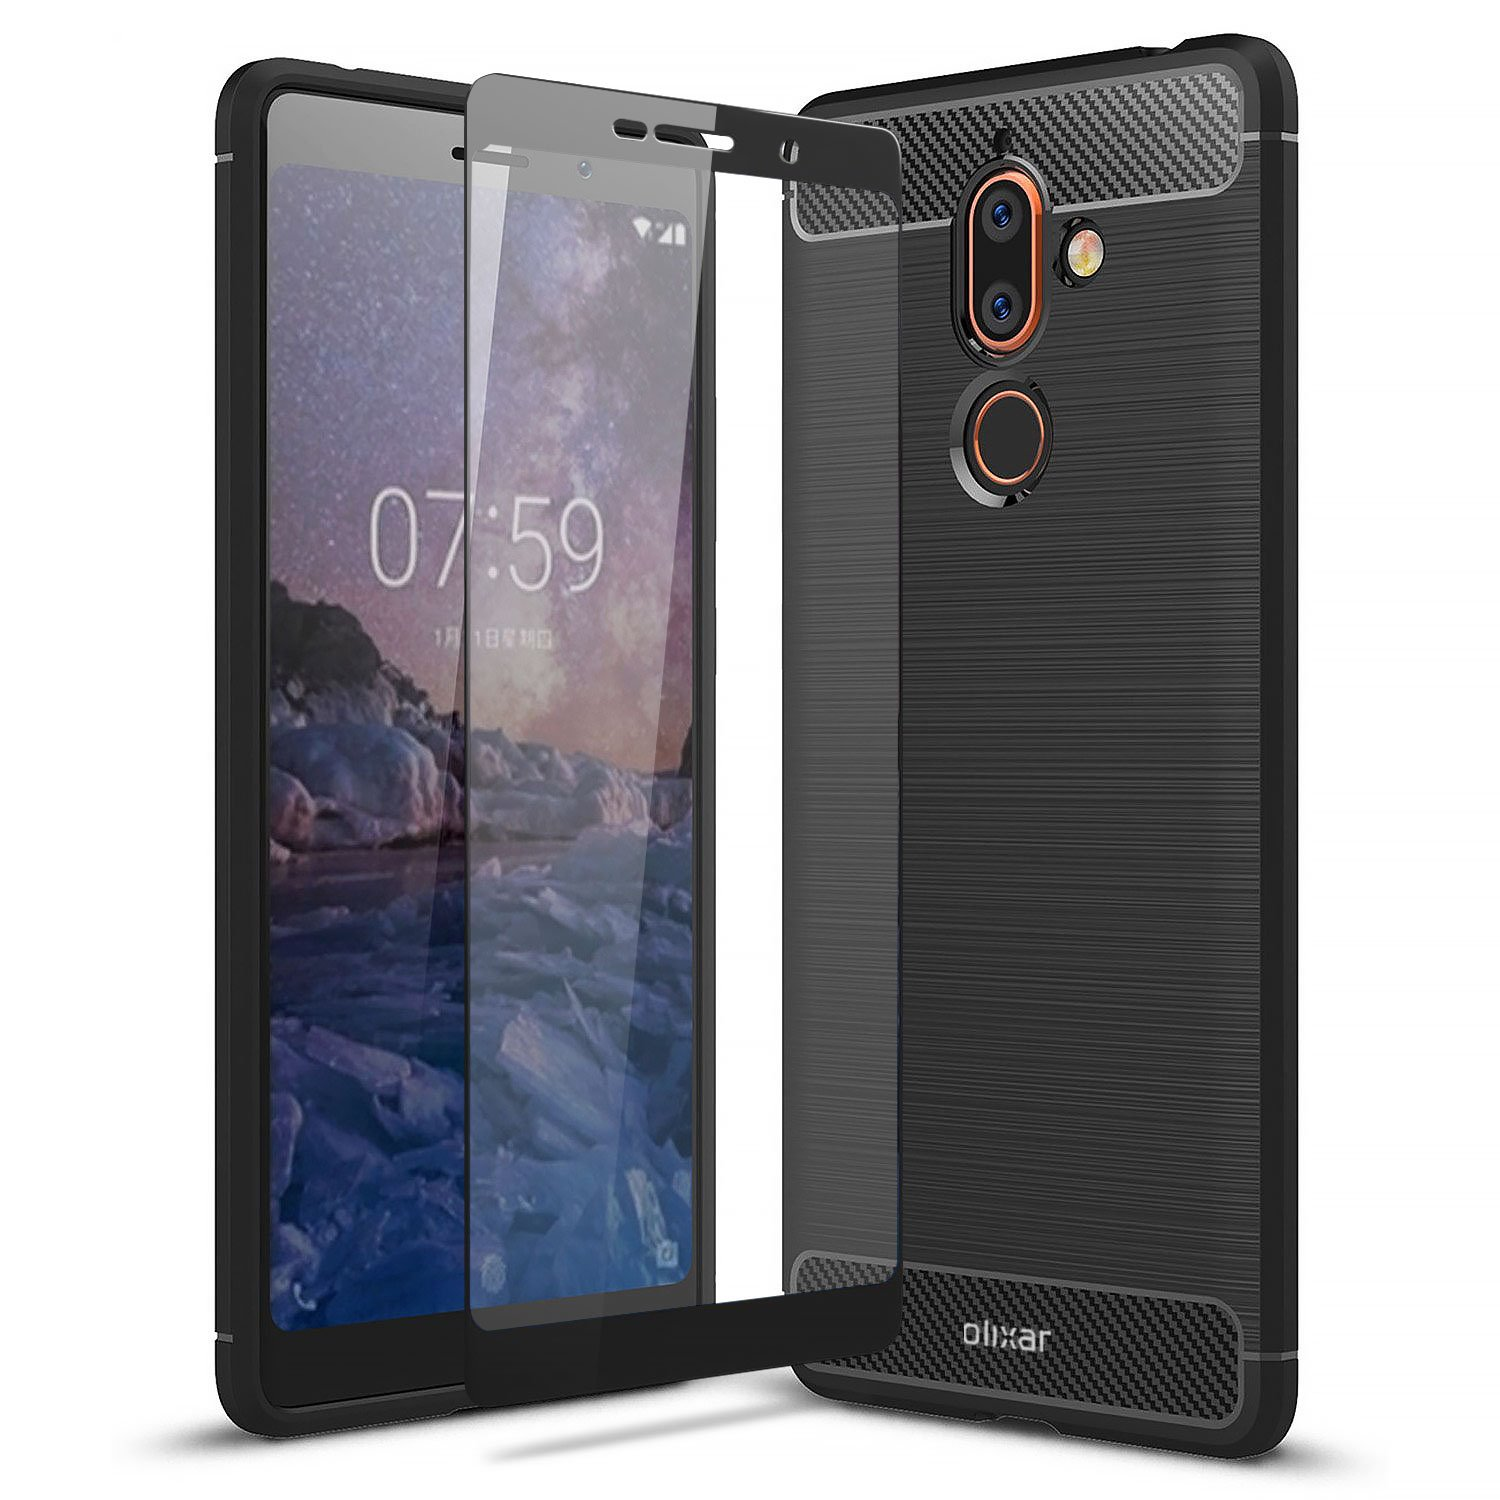 Olixar Nokia 7 Plus Case With Screen Protector - Case Compatible Tempered Glass - Tough Case - Front + Back 360 Degree Protection Sentinel - Black by Olixar (Image #1)